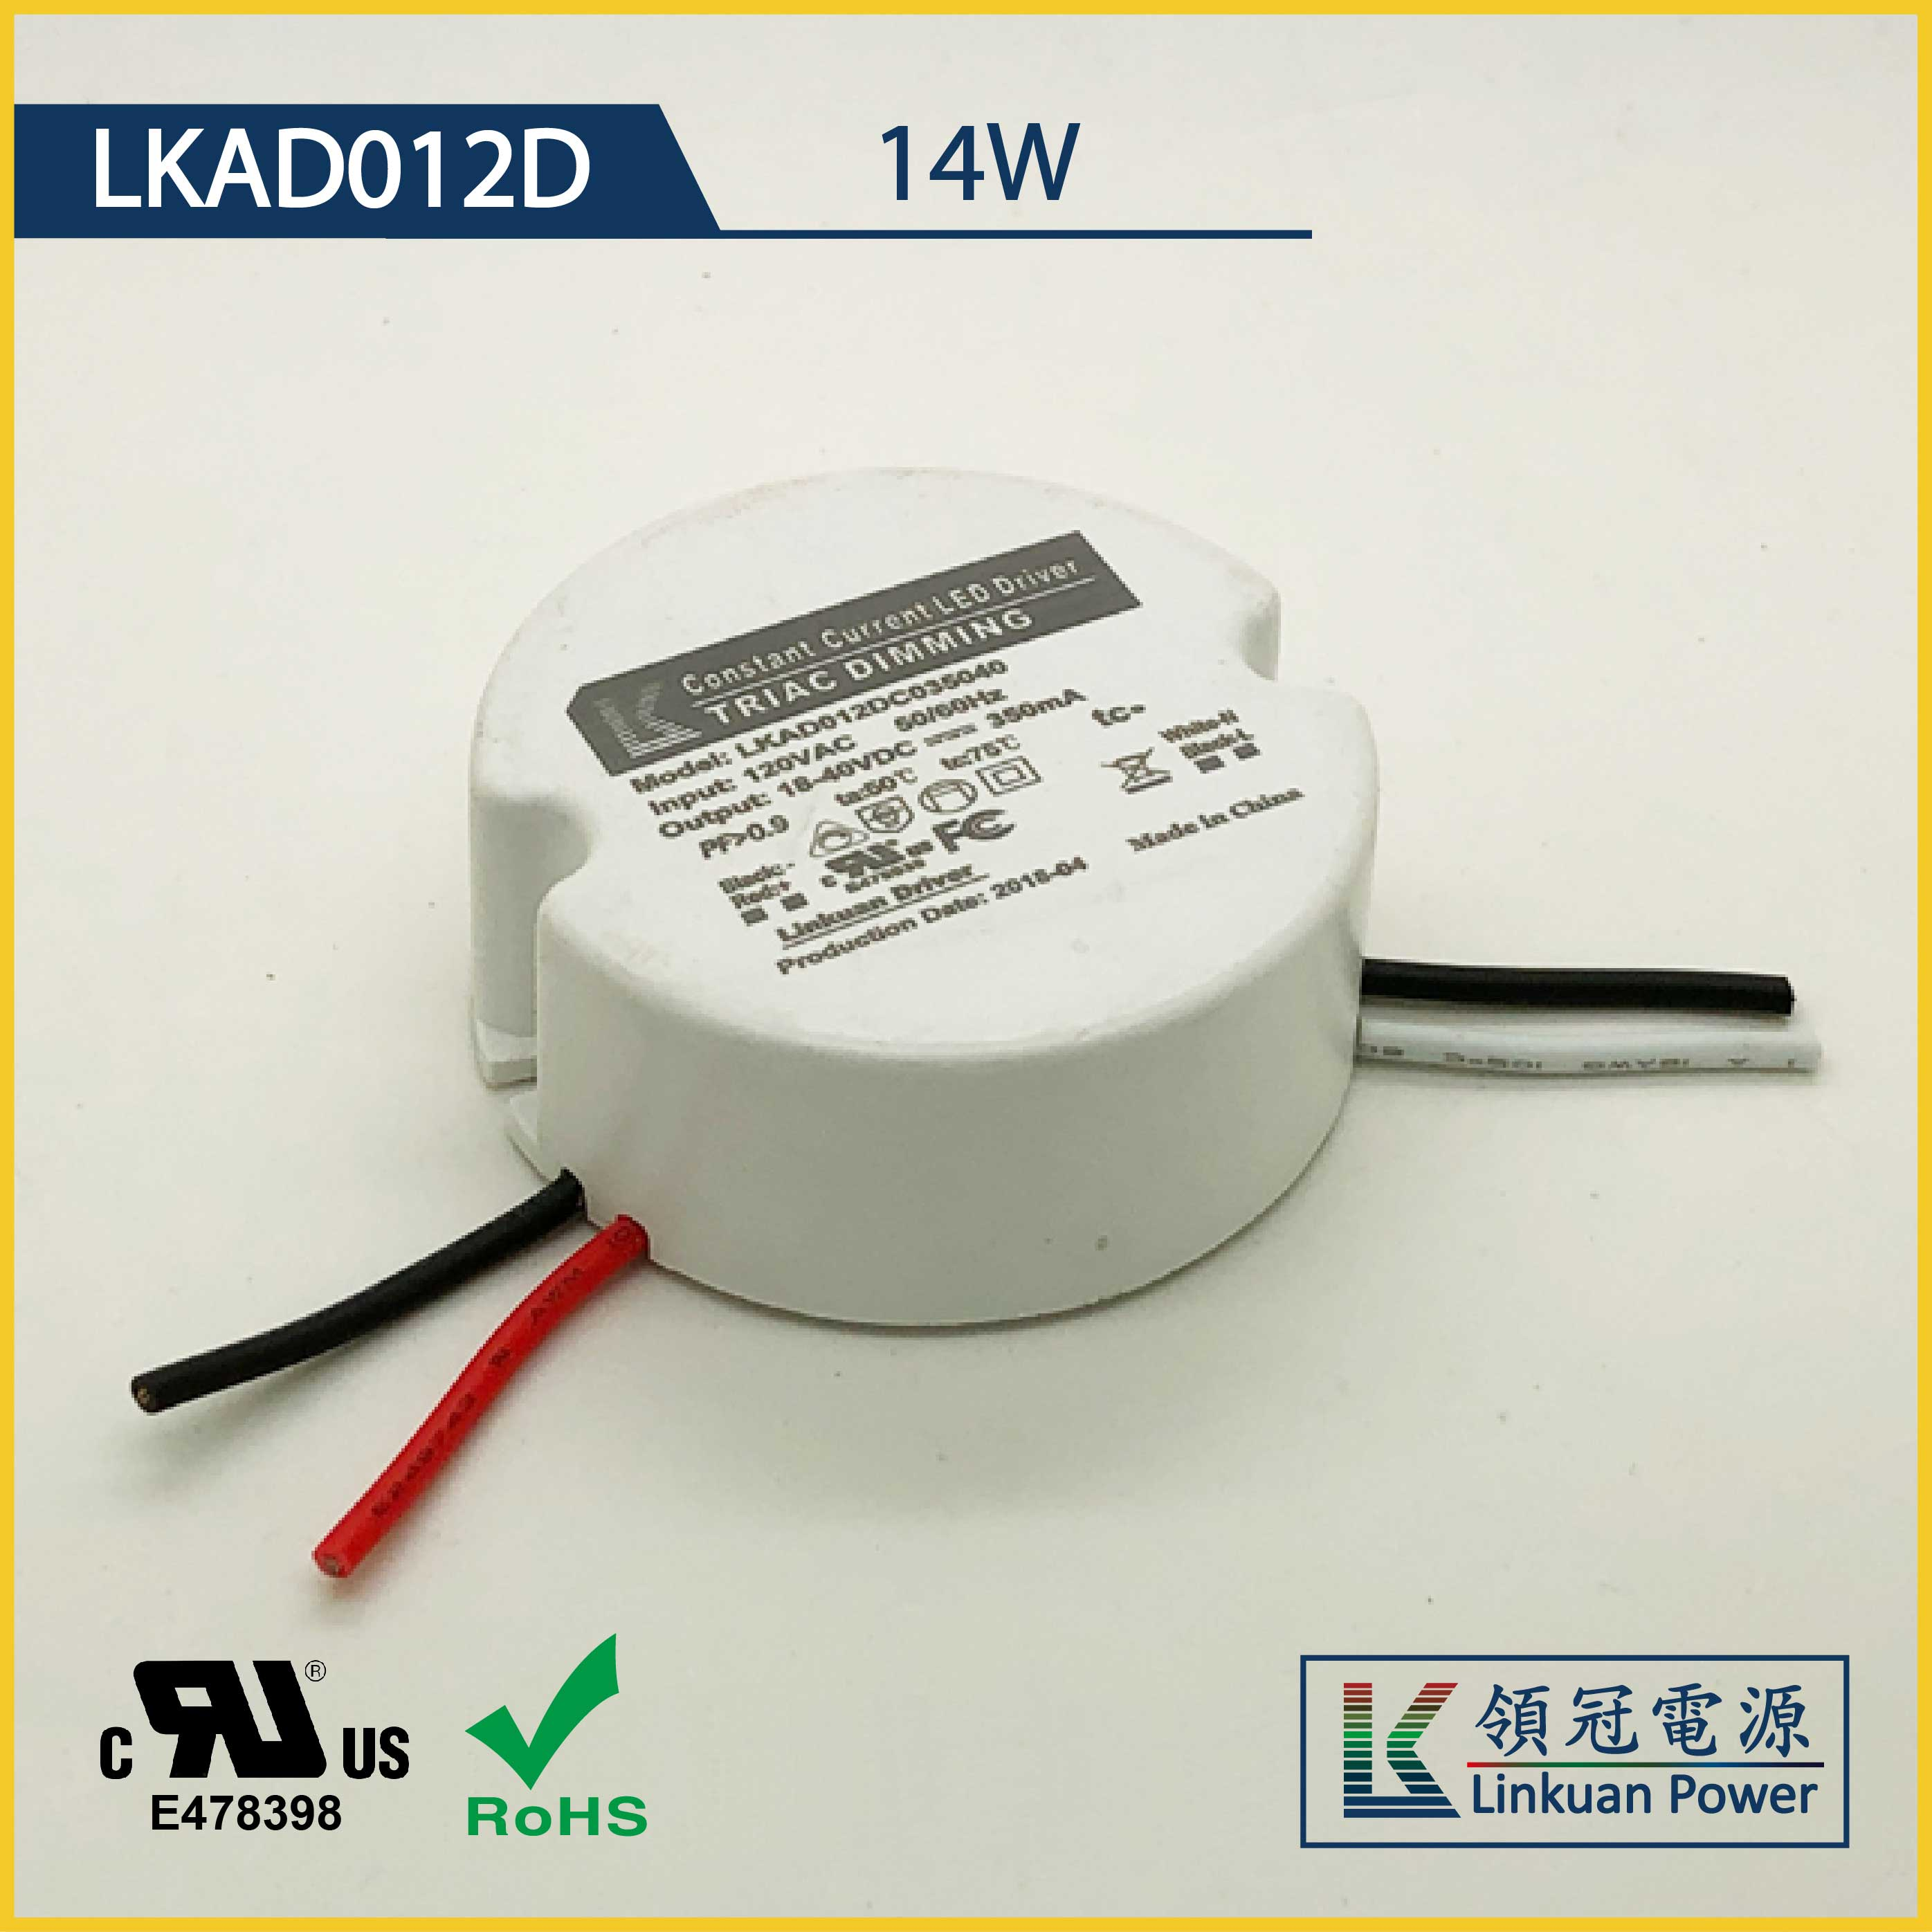 LKAD012D 14W 18-40V 350mA Dimmable LED drivers